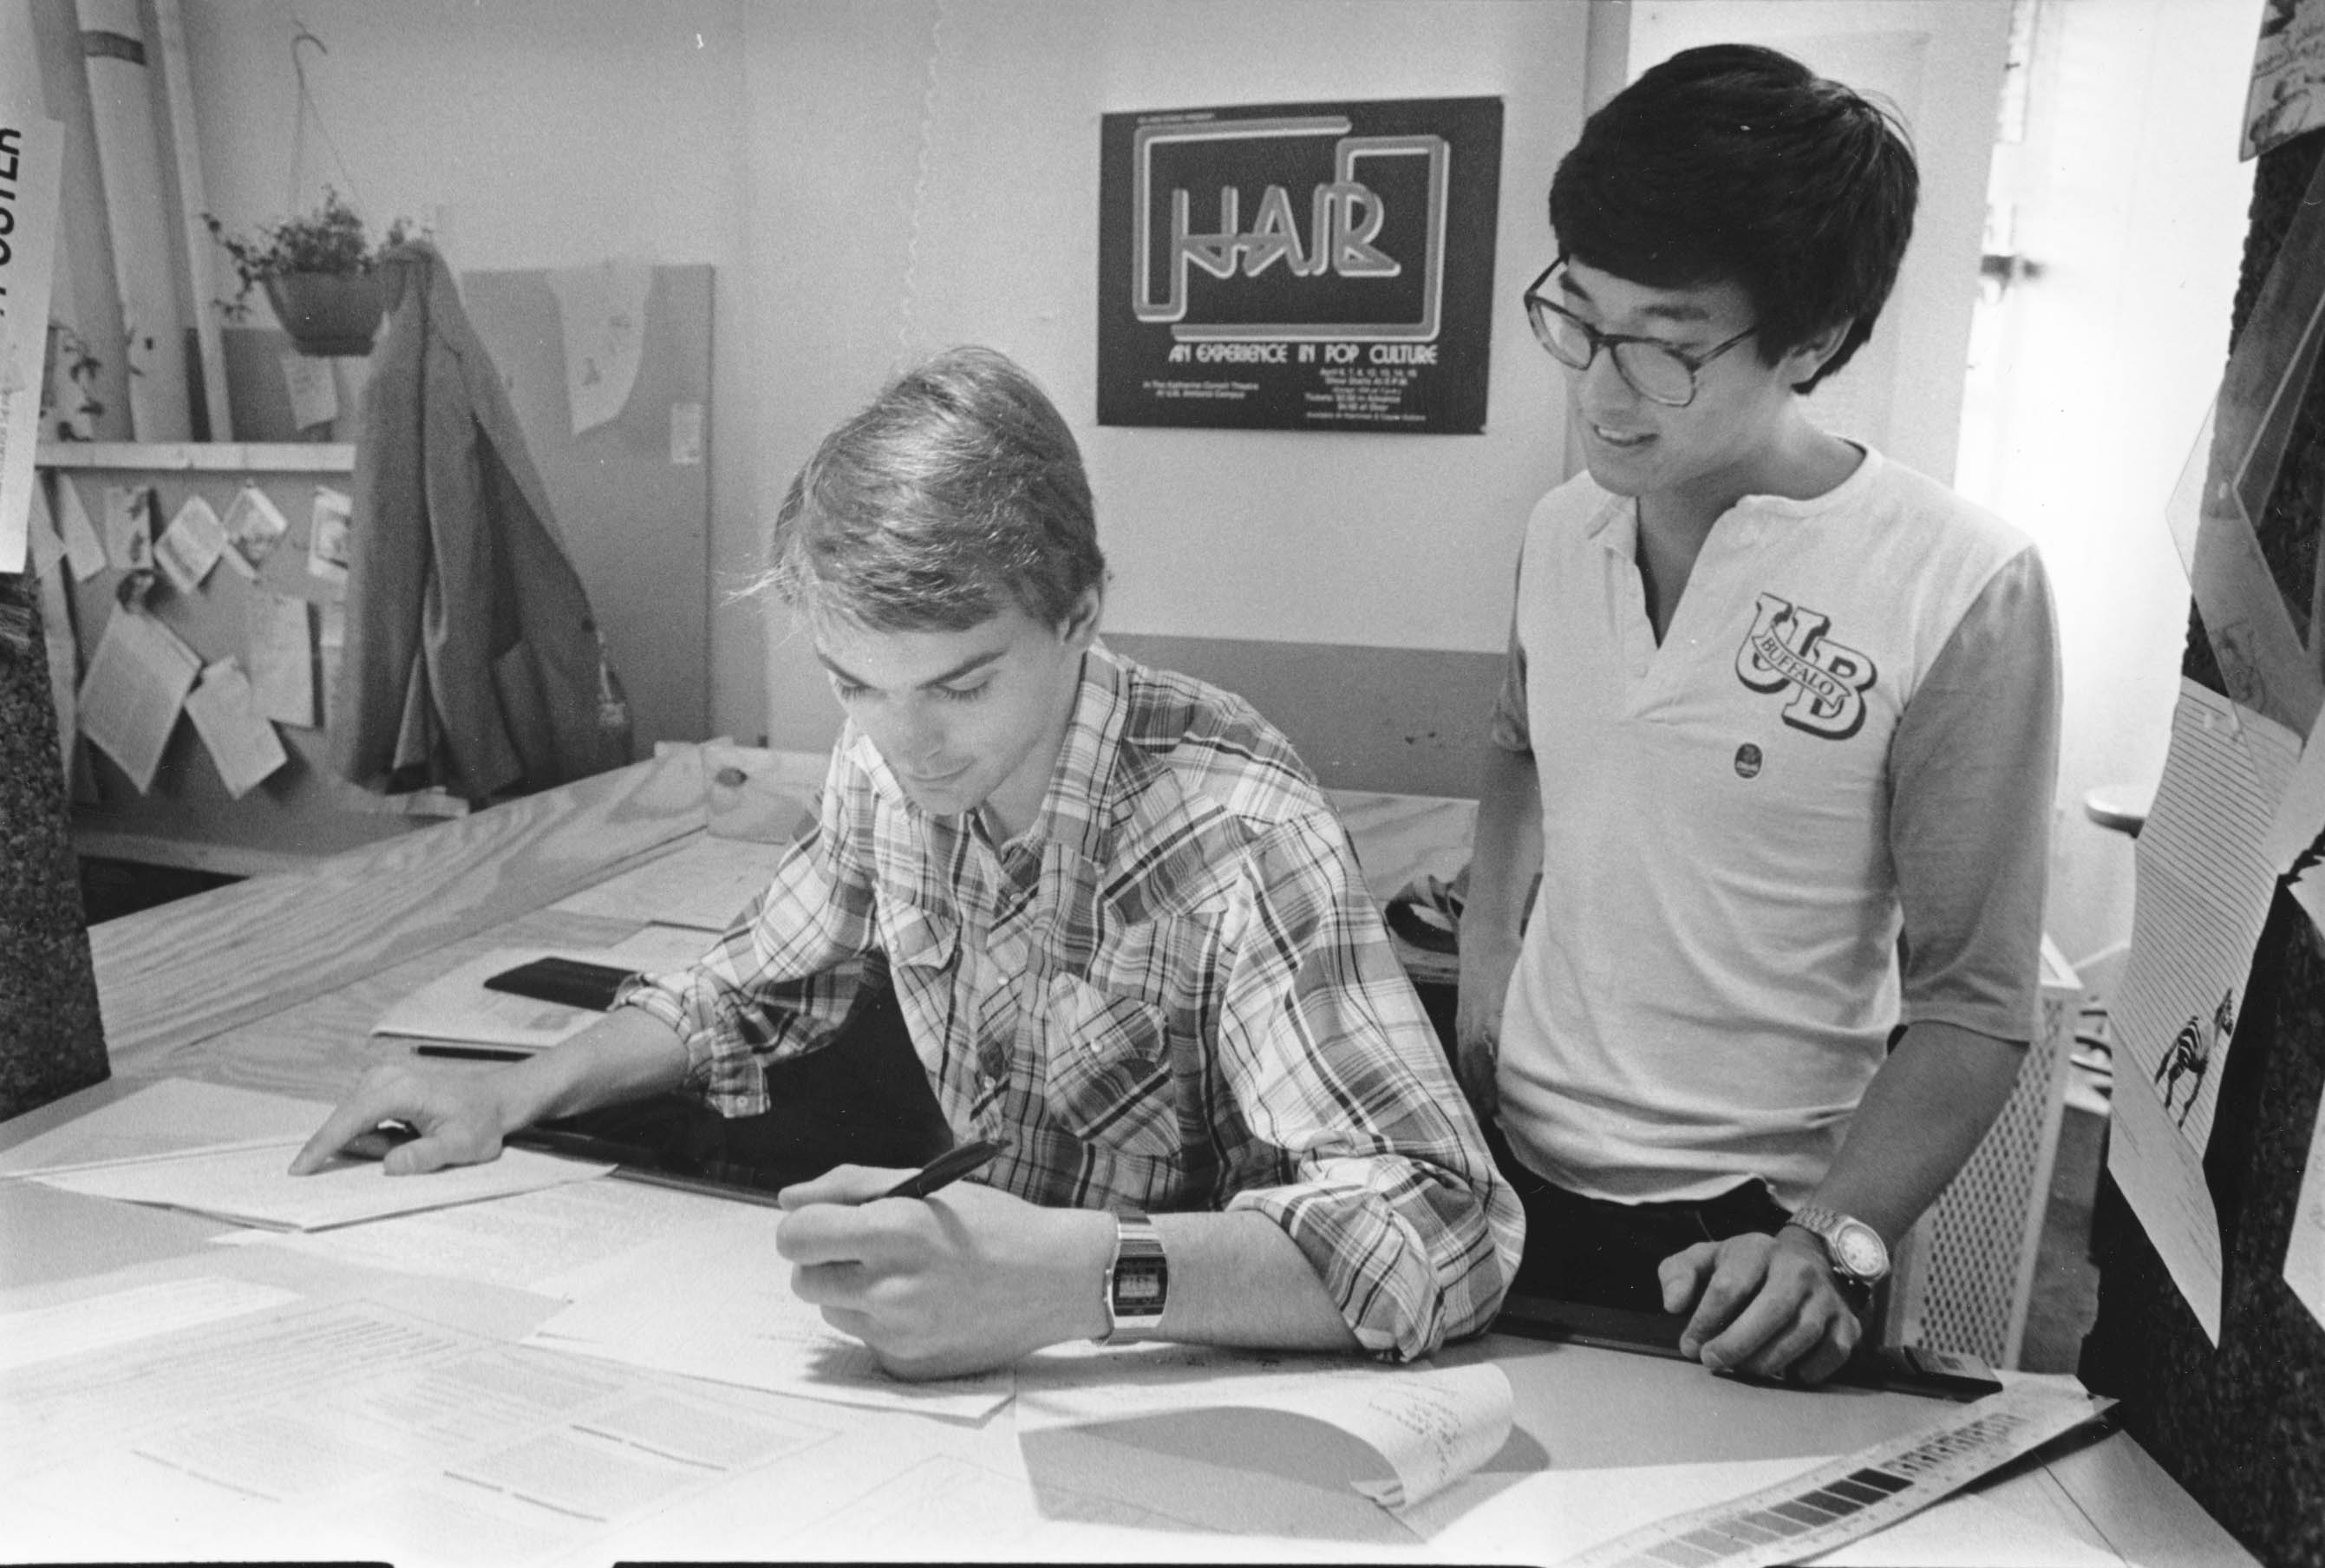 Students in the Student Association office, circa 1980s